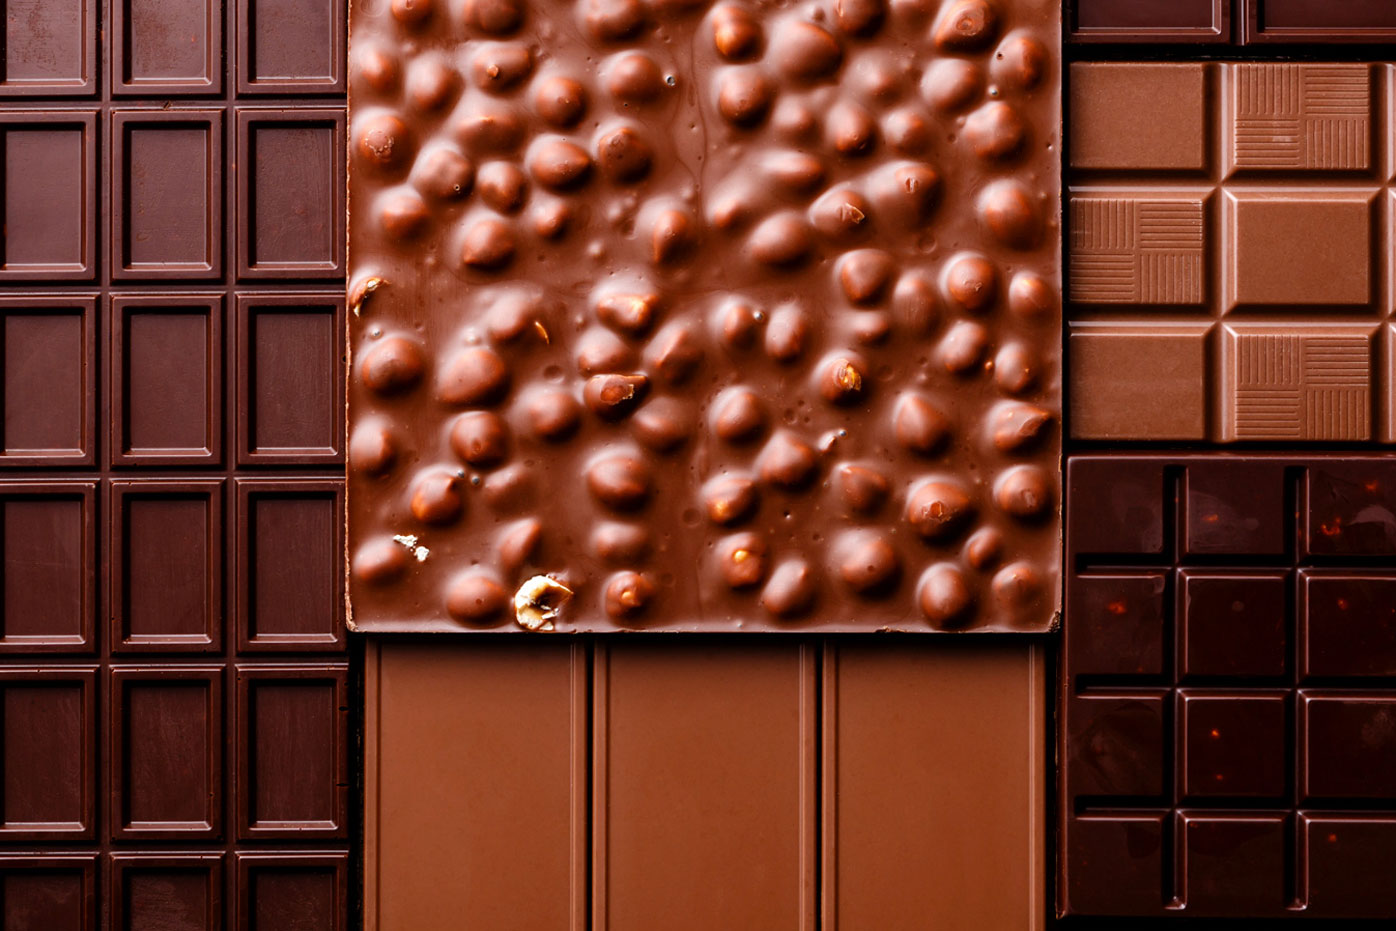 Chocolate: Increases brainpower